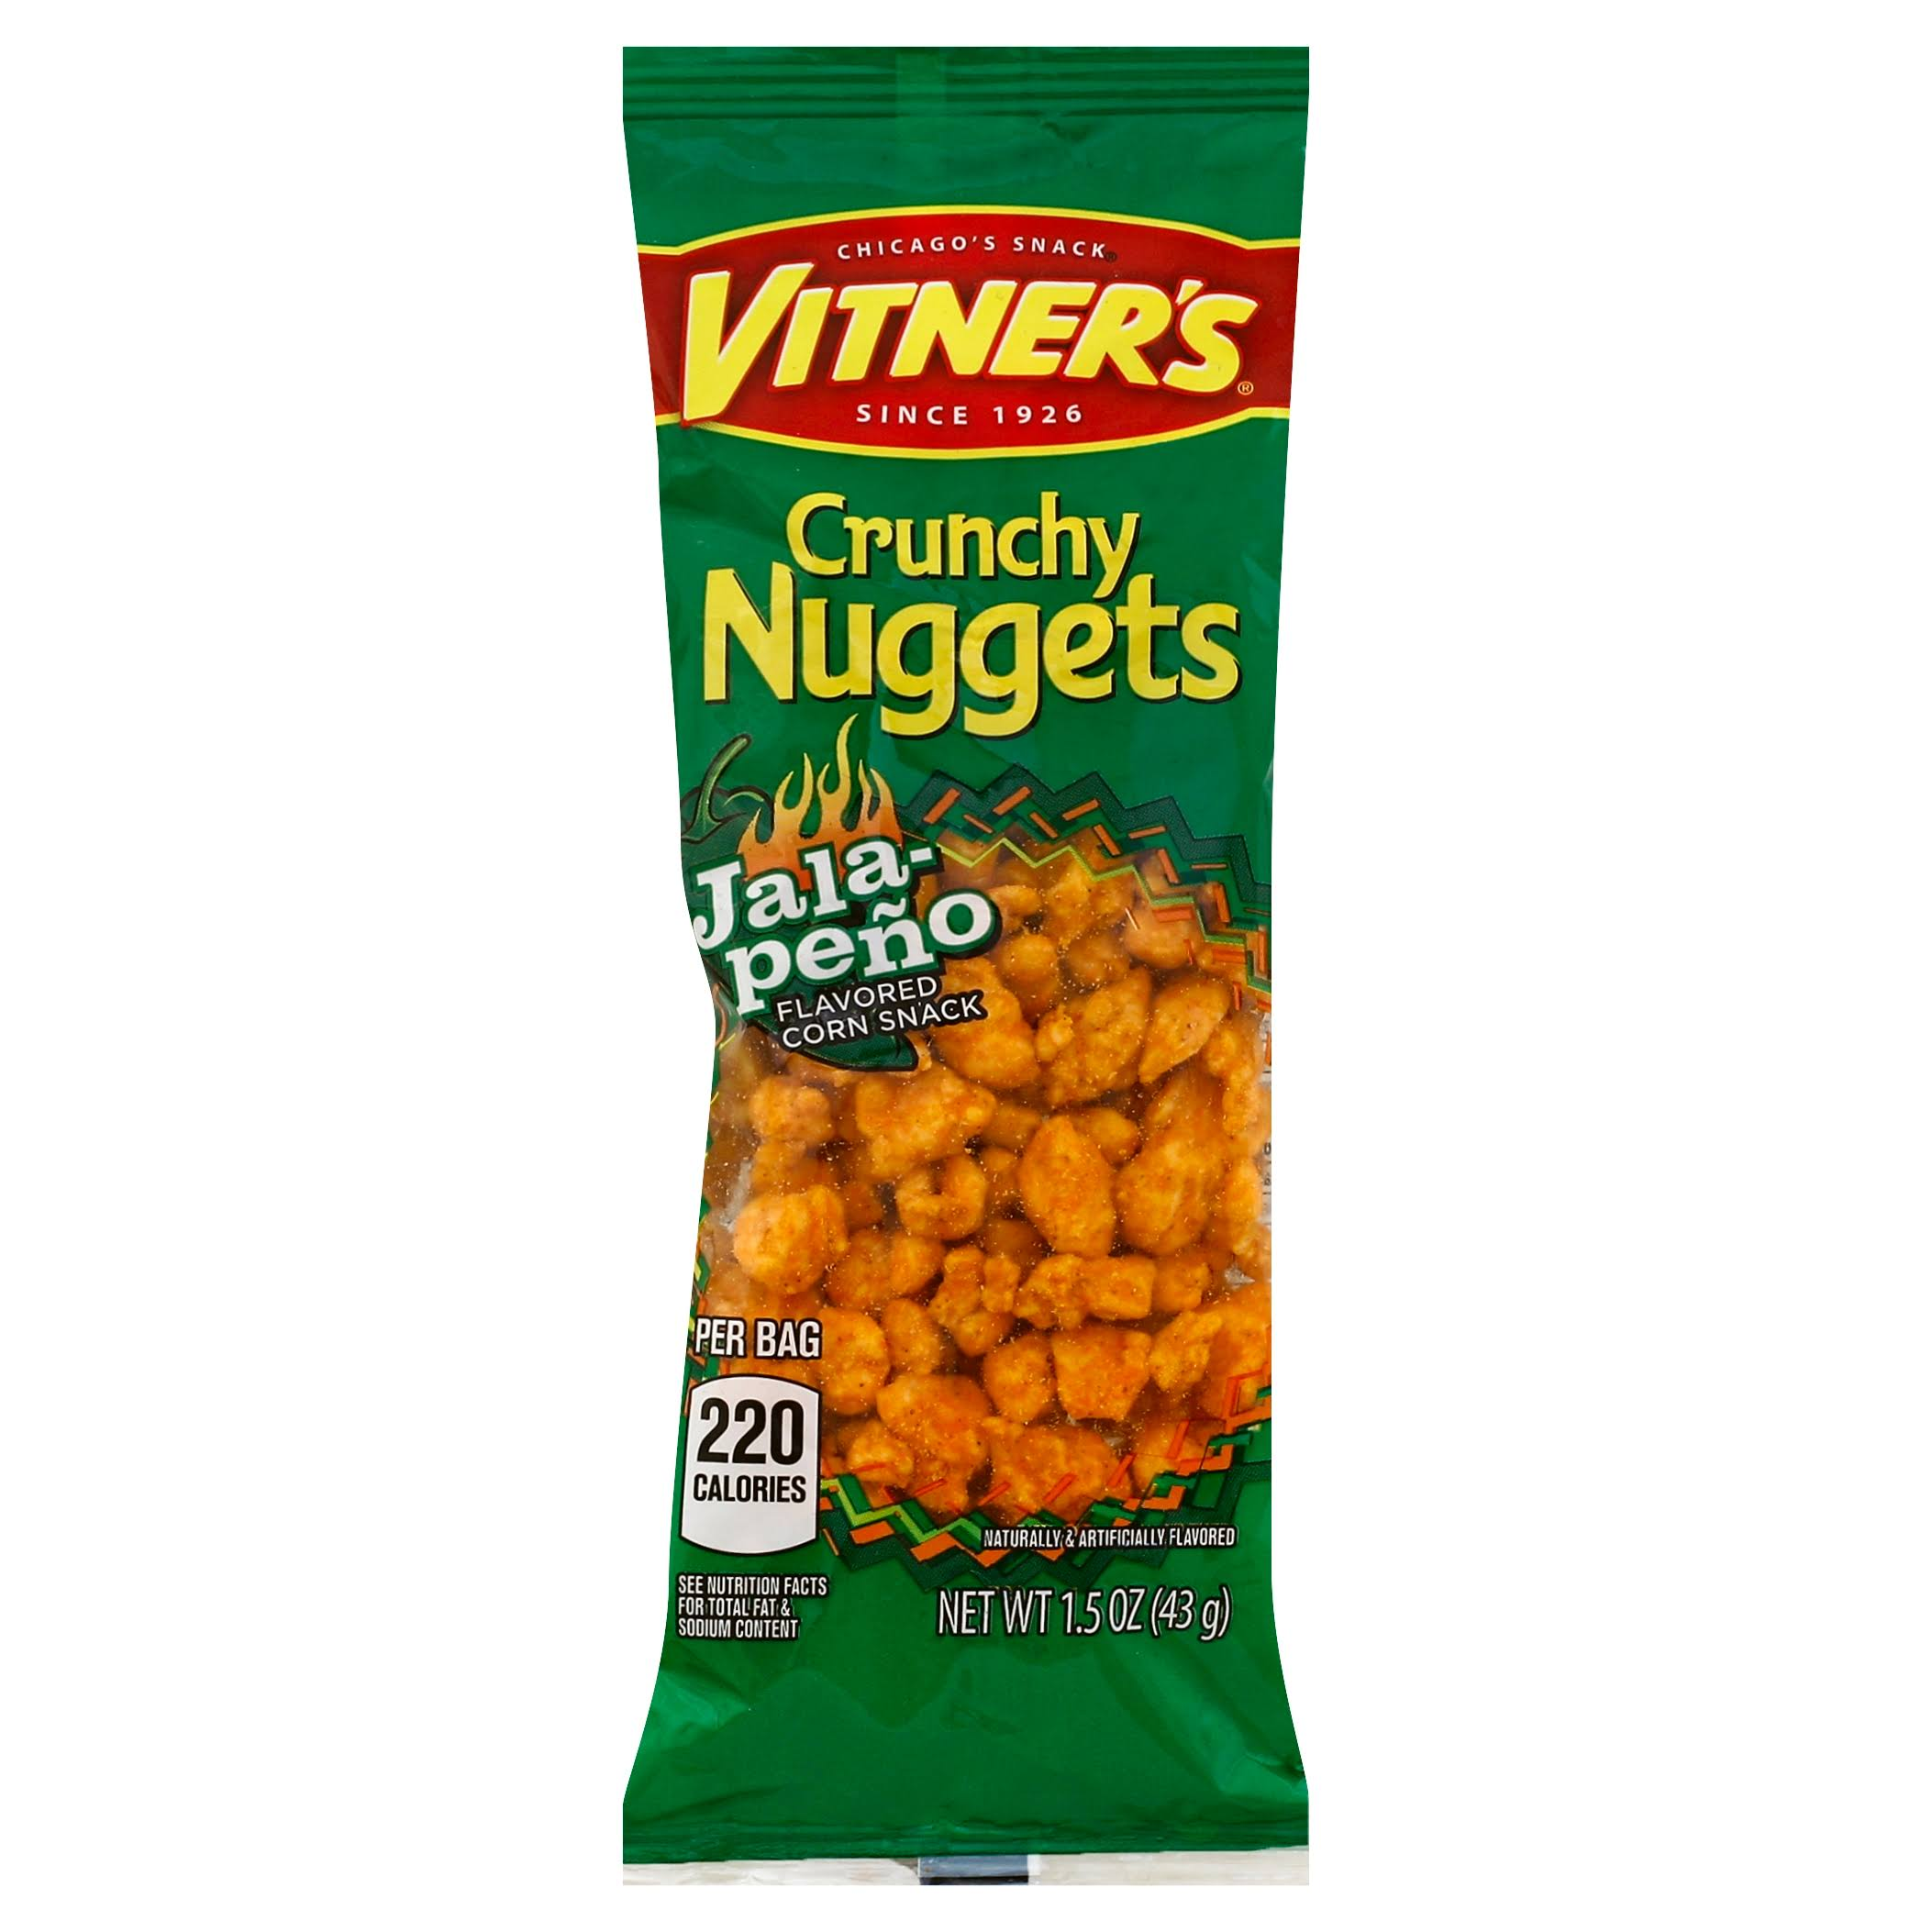 Vitners Corn Snack, Jalapeno Flavored, Crunchy Nuggets - 1.5 oz